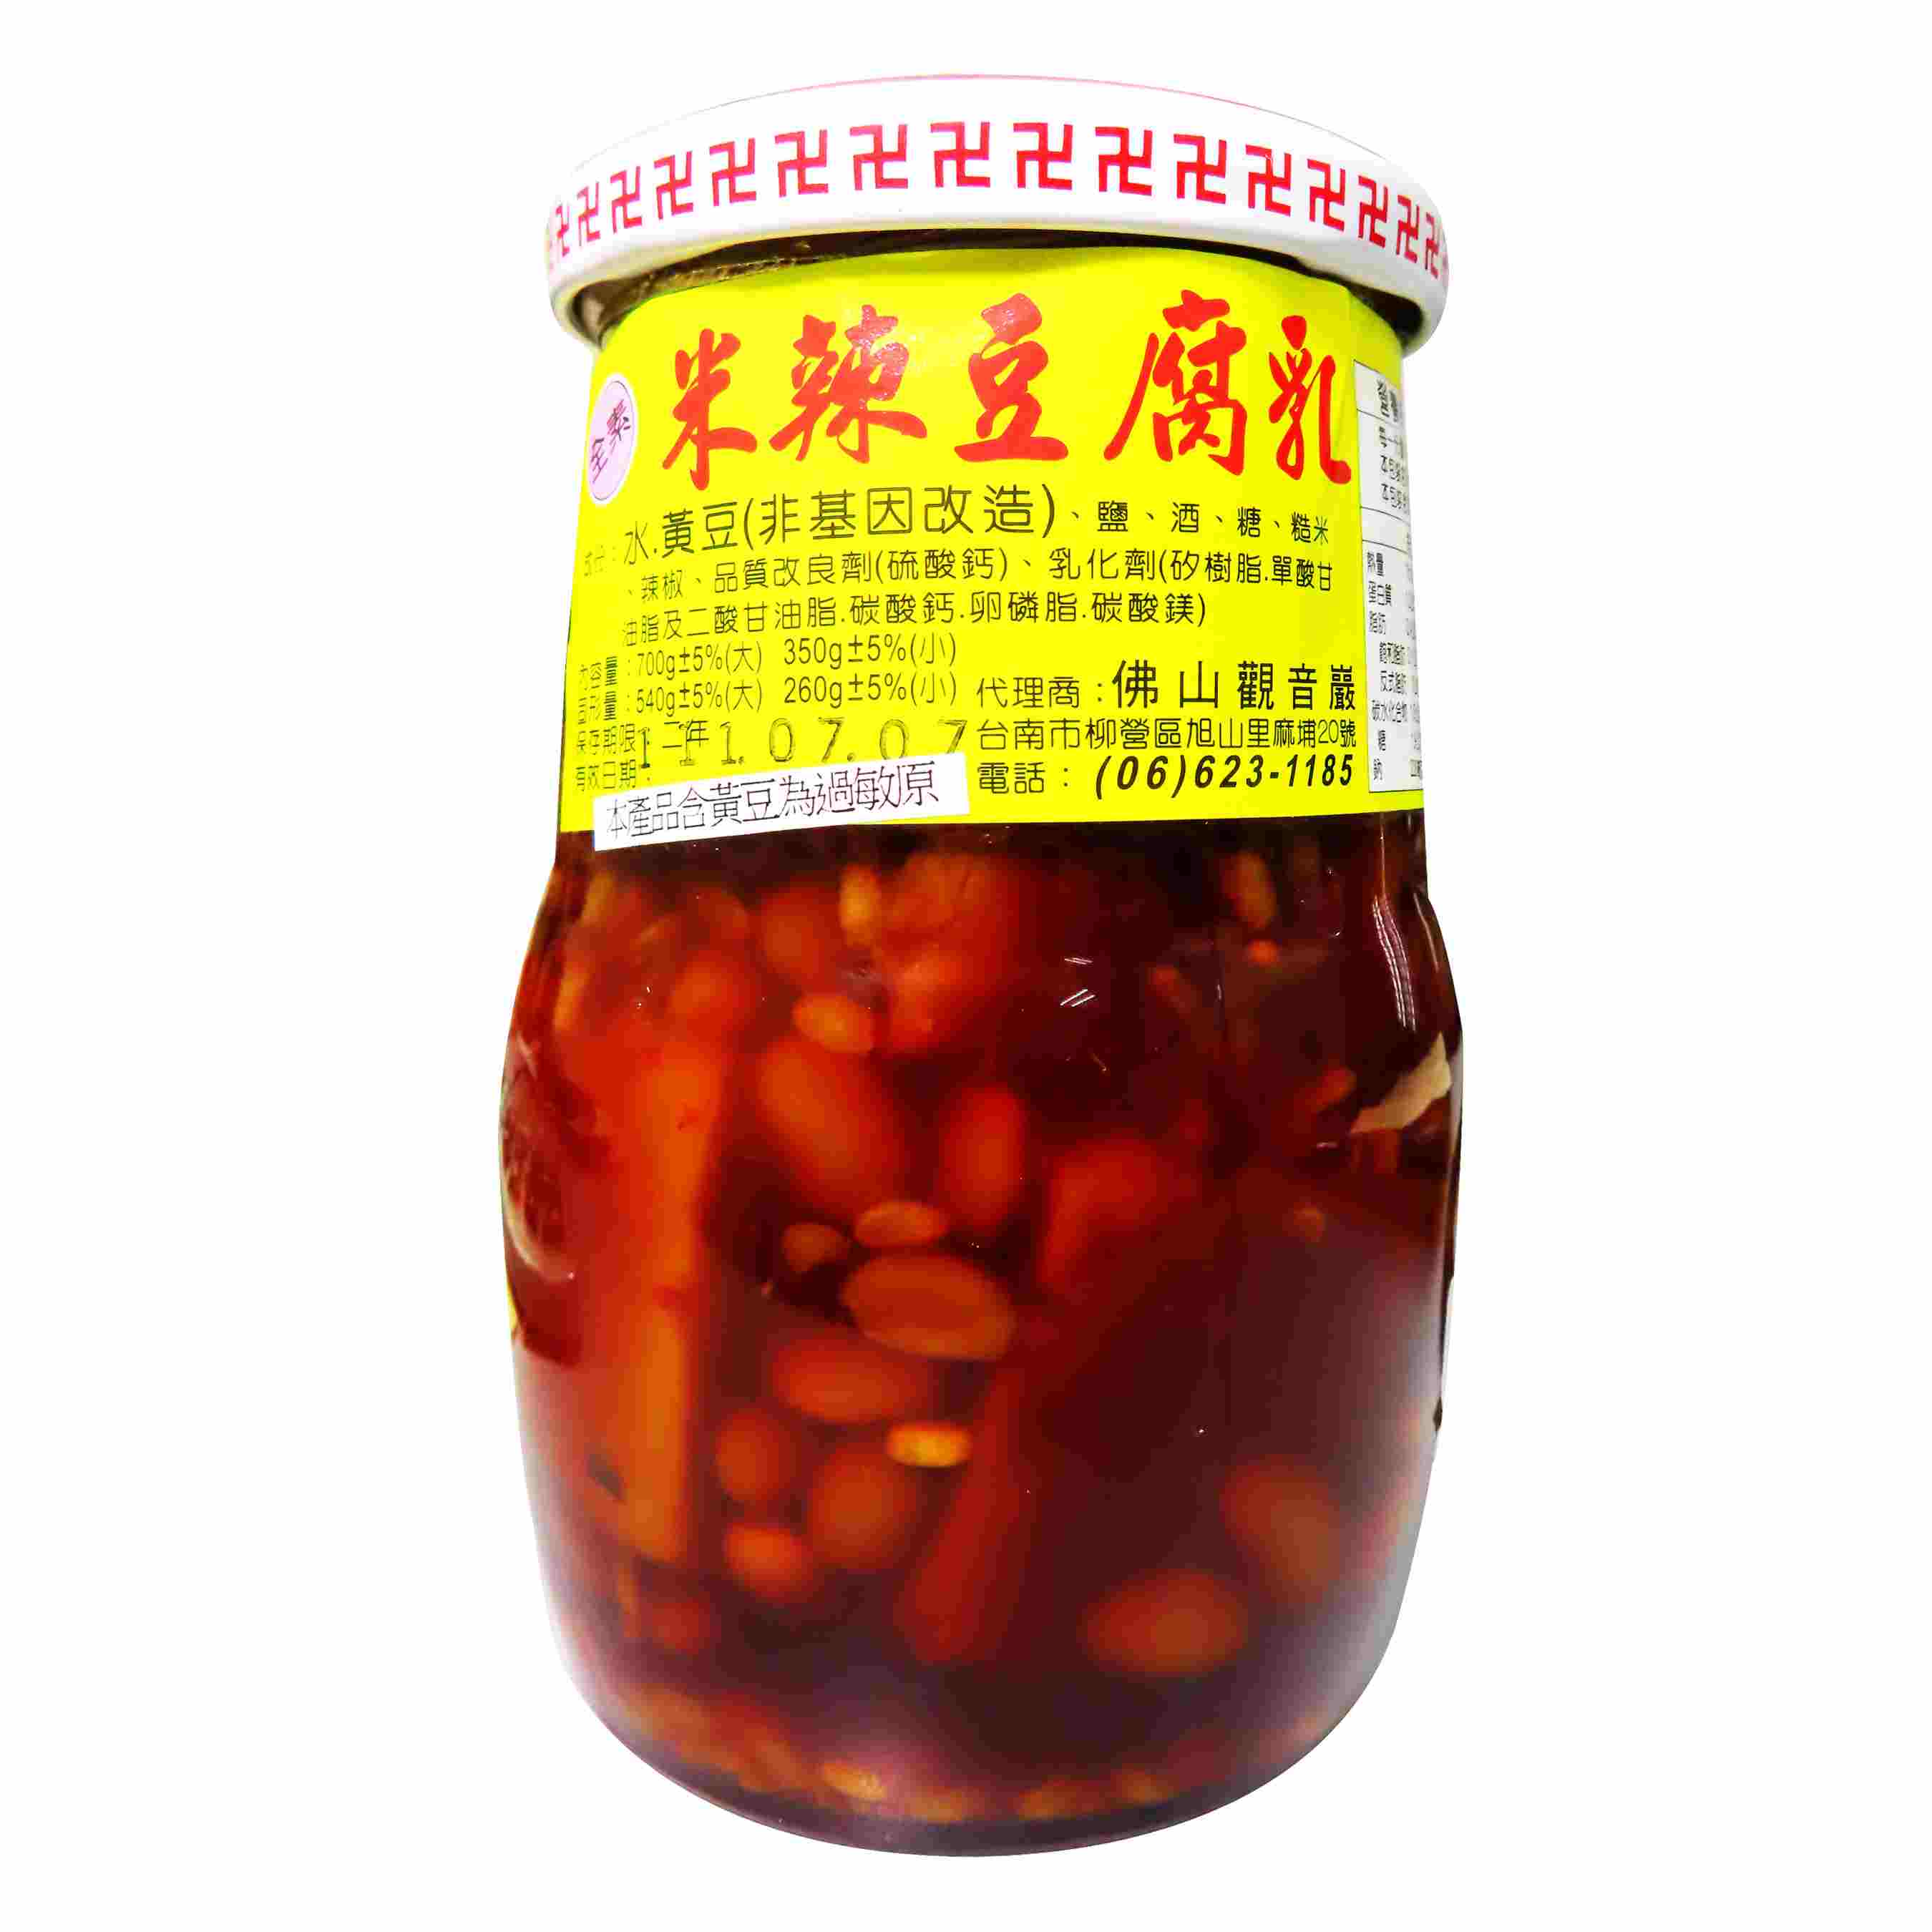 Image Bean Curd With Chili 佛山观音嚴 - 米辣豆腐乳 400grams